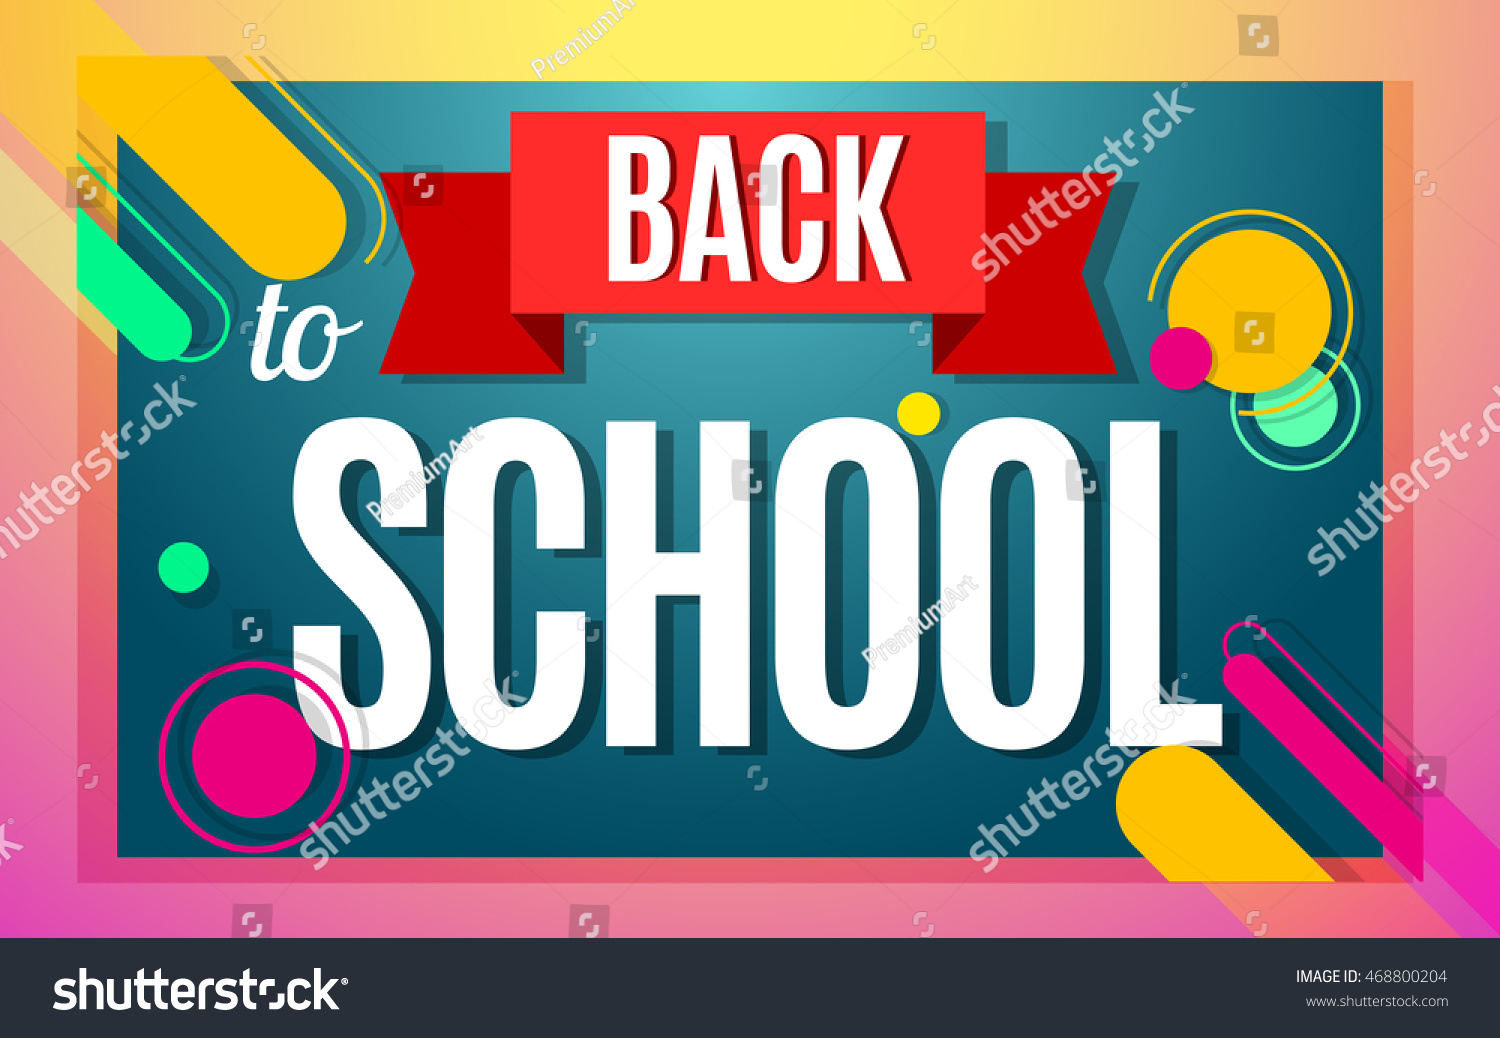 Welcome back school color banner design stock vector 468800204 welcome back to school color banner design vector illustration template in modern style pronofoot35fo Image collections